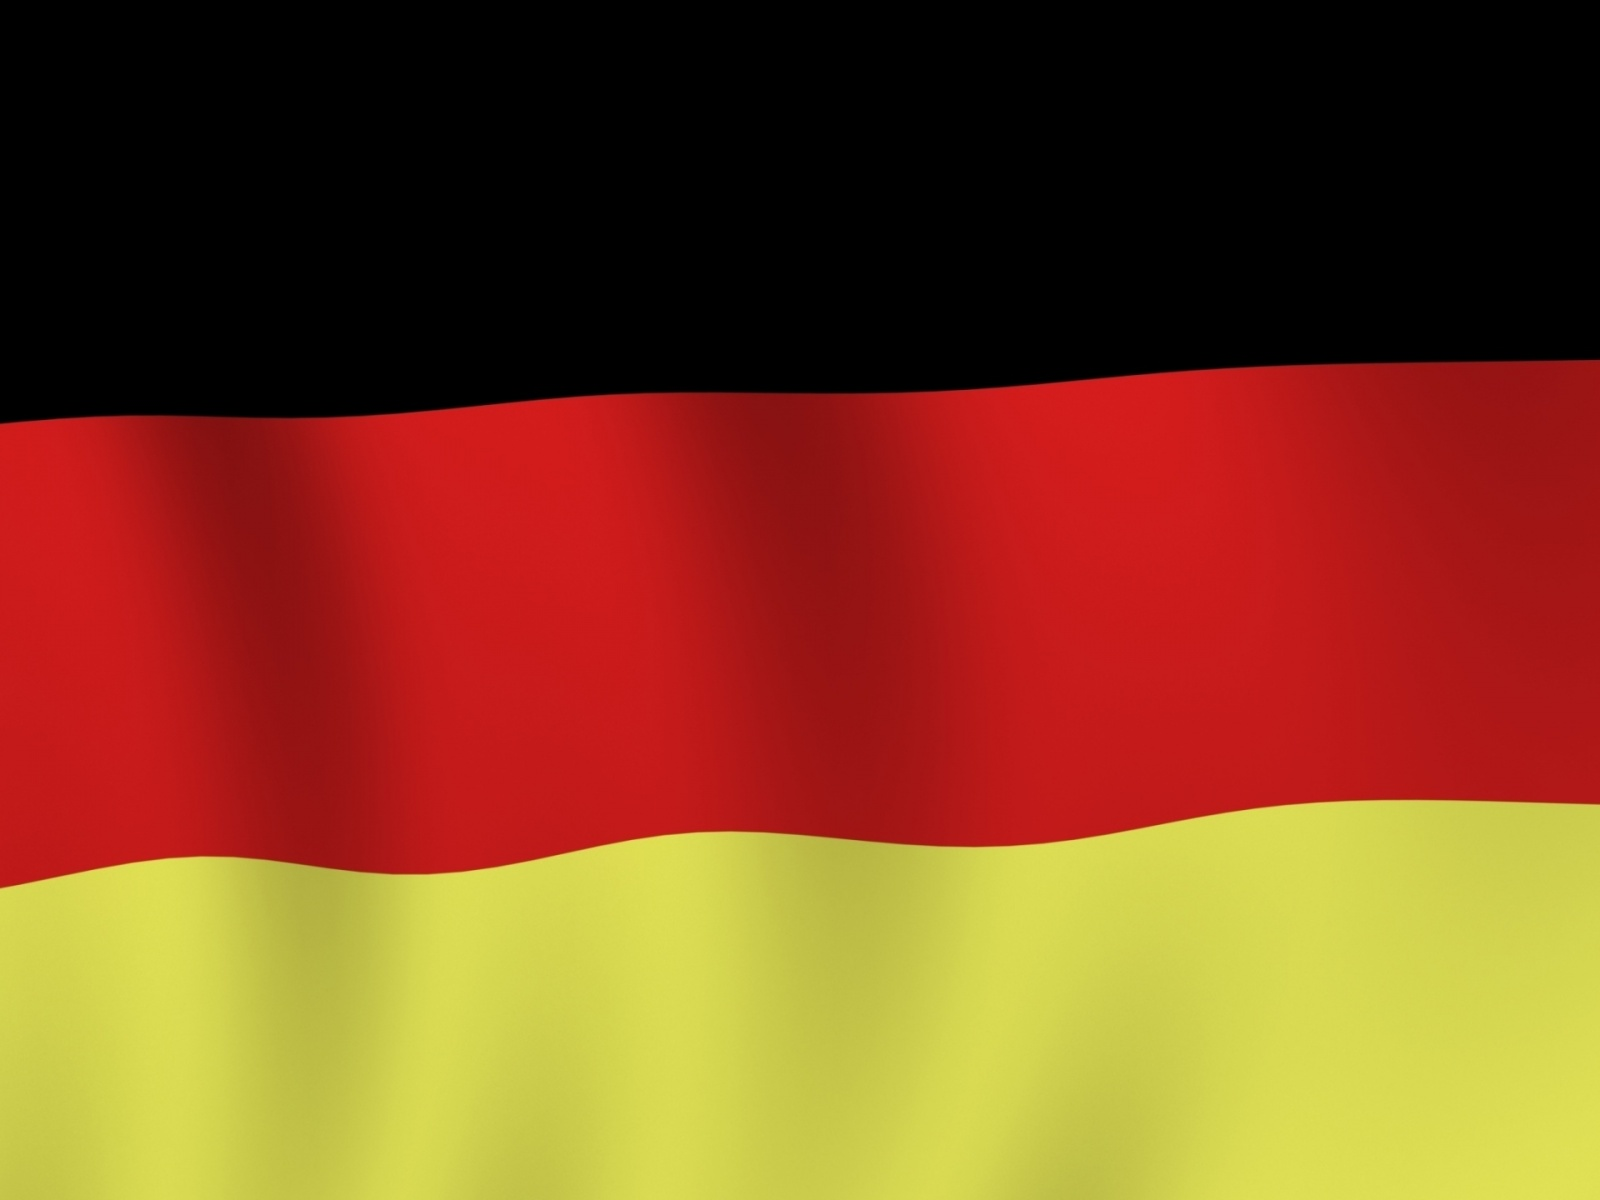 Pin German flag wallpaper wallpapers hd for free 1600x1200